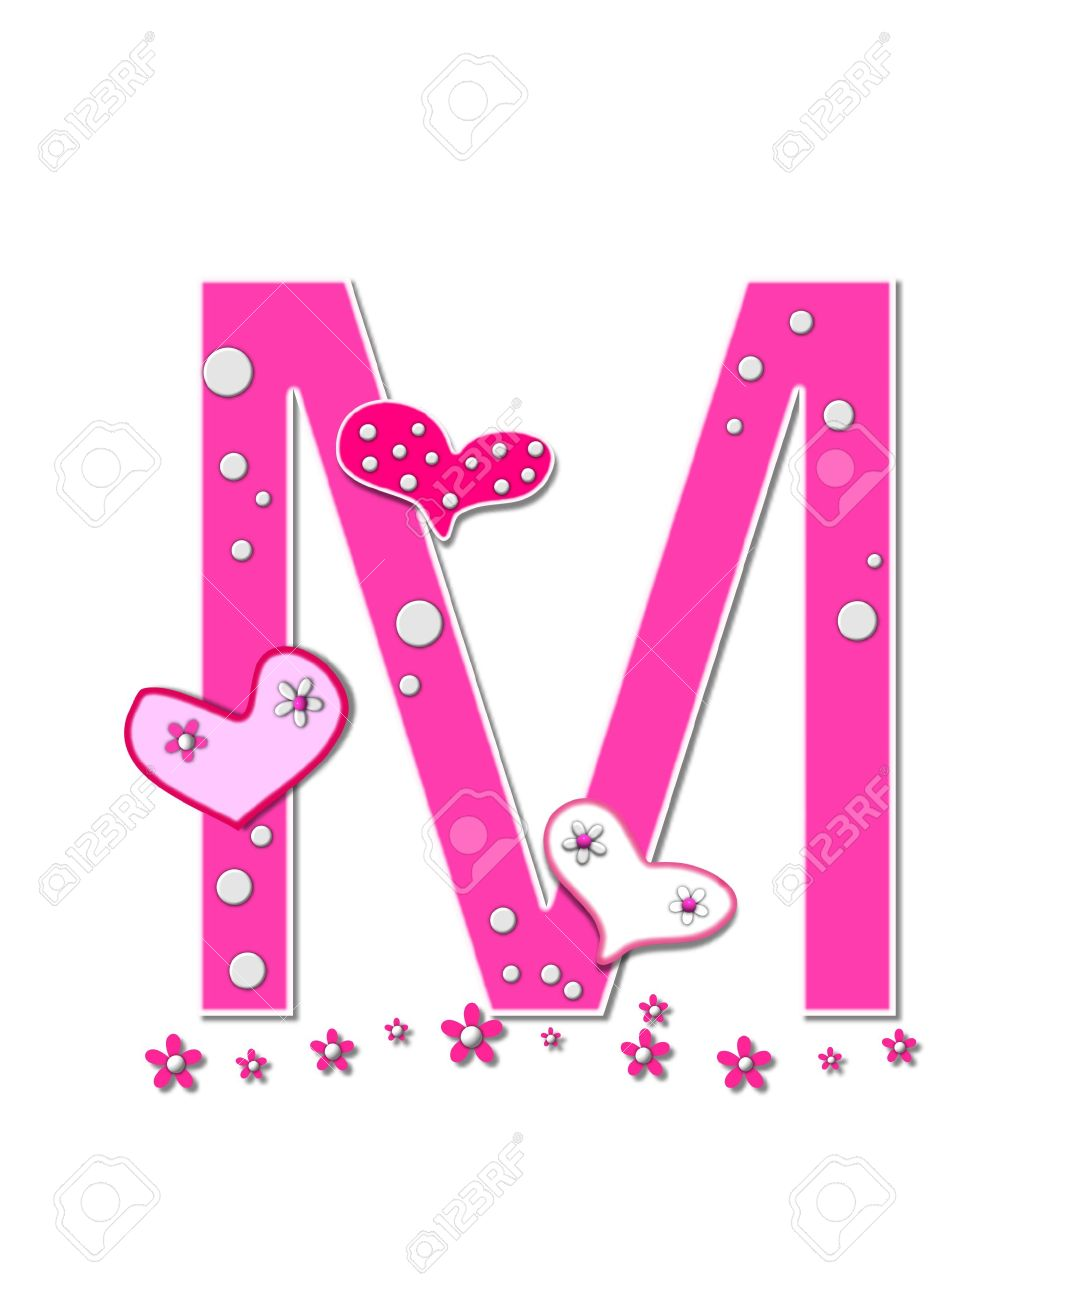 The Letter M In The Alphabet Set Heartfull Is Pink Outlined